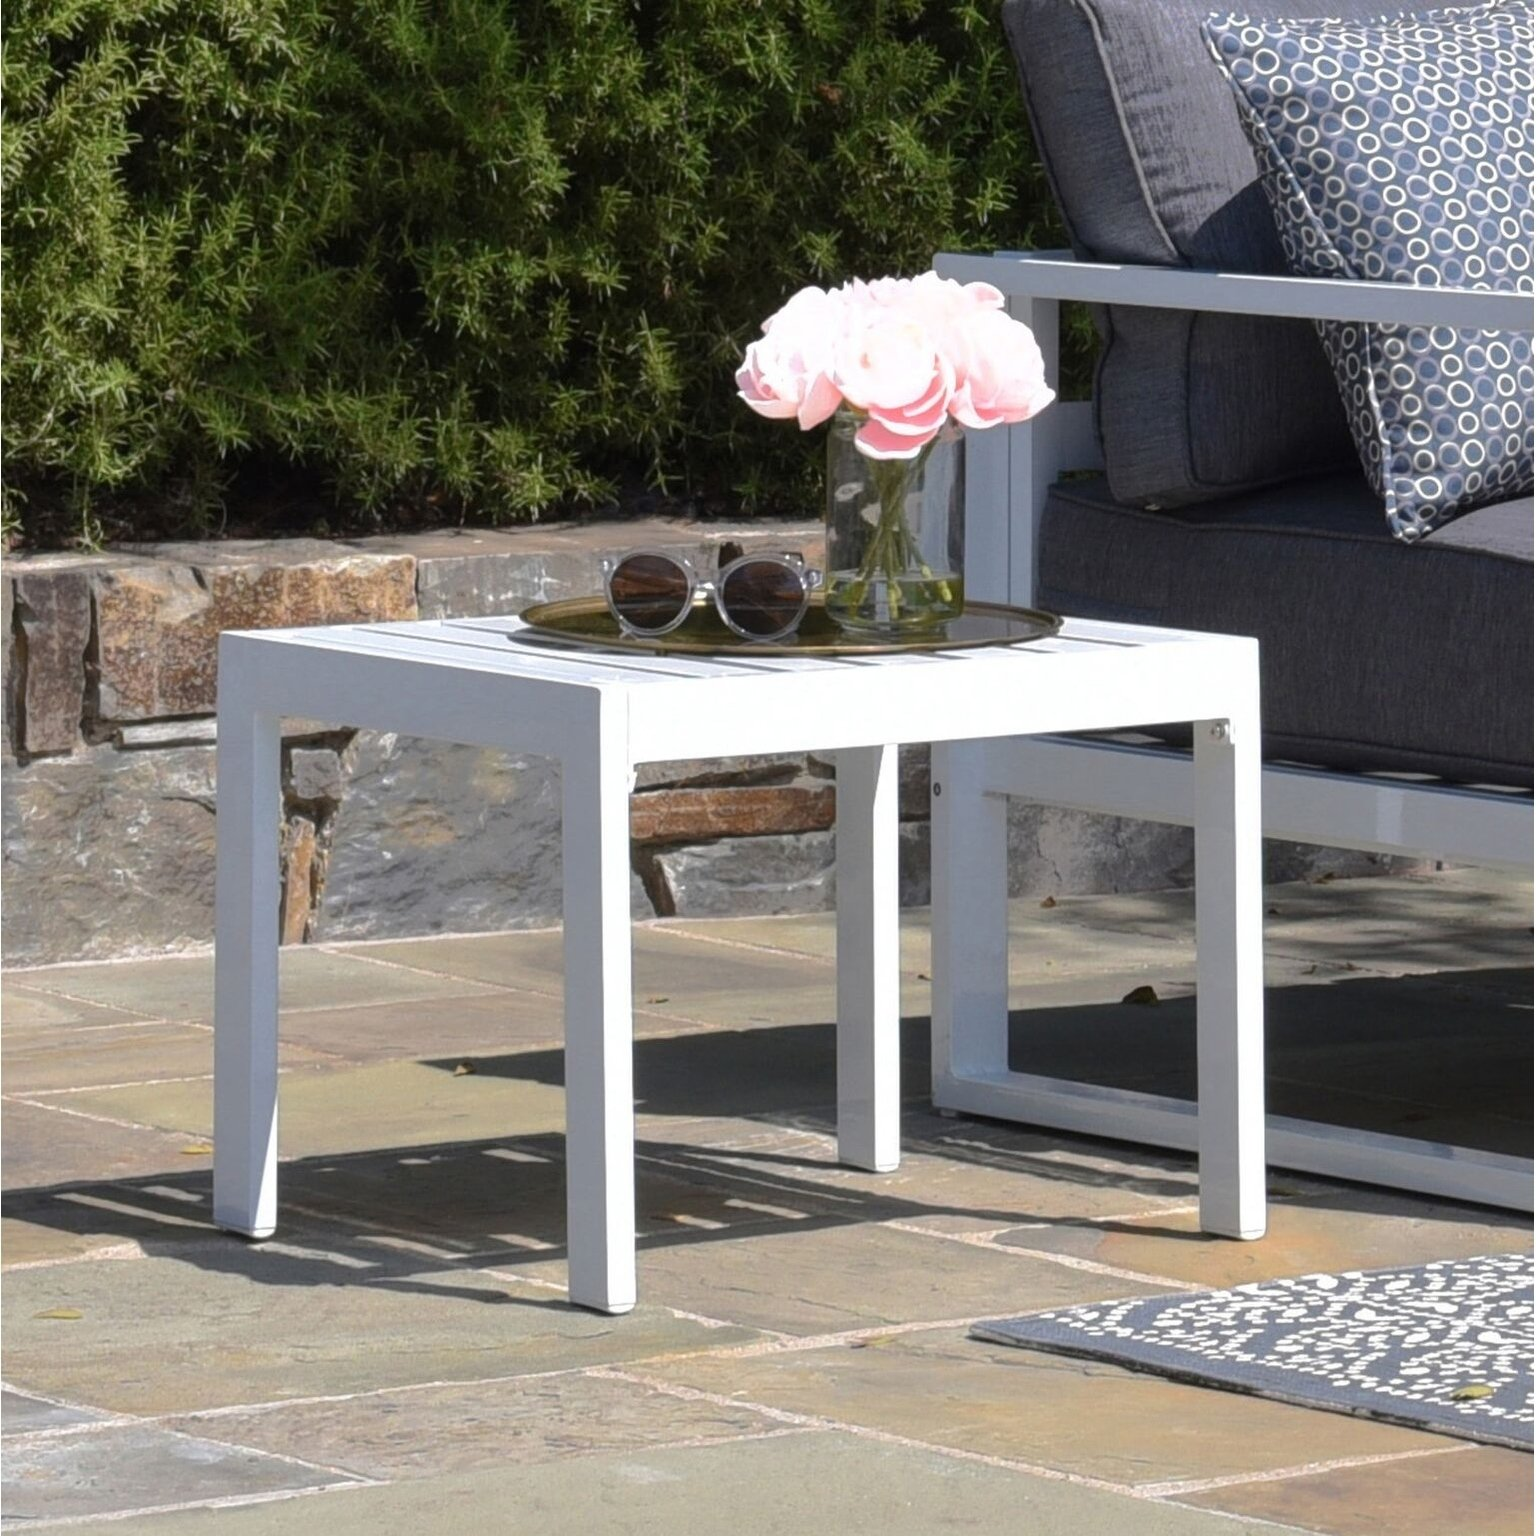 elle decor paloma outdoor side table free shipping today gray patio set covers bronze coffee french woodard furniture gold mirrored accent large pub shelby chest round silver